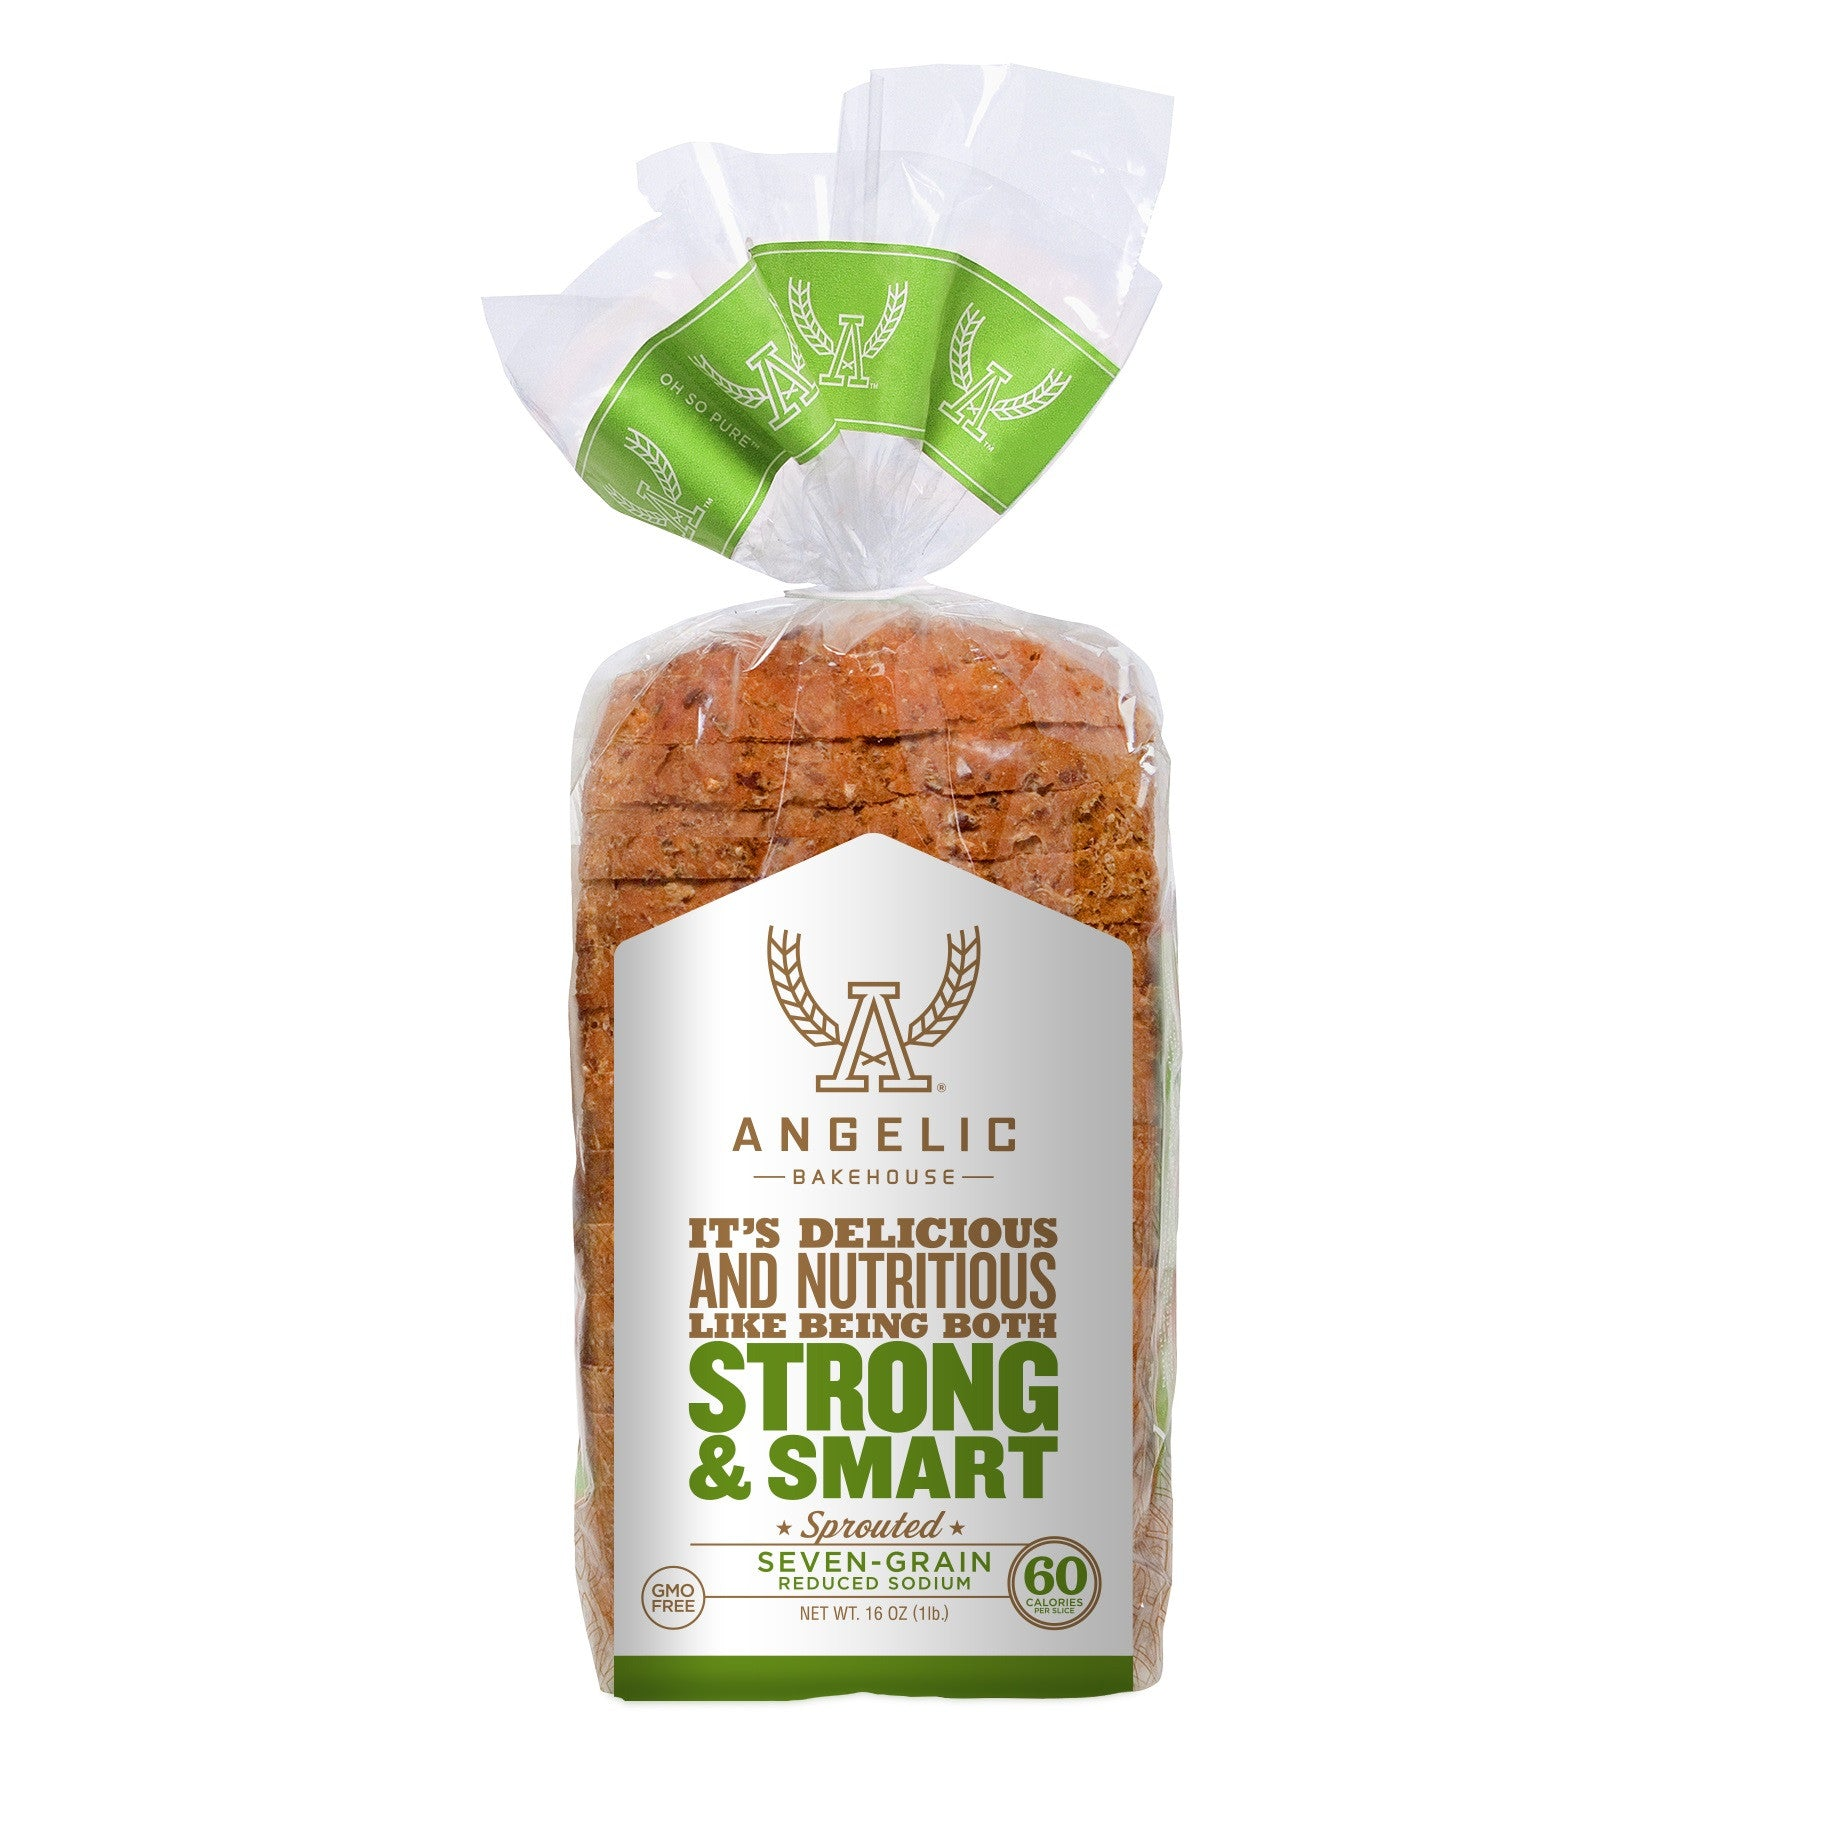 Angelic Bakehouse Seven-Grain Sprouted Reduced Sodium Bread, 16 Oz (Pack of 8)